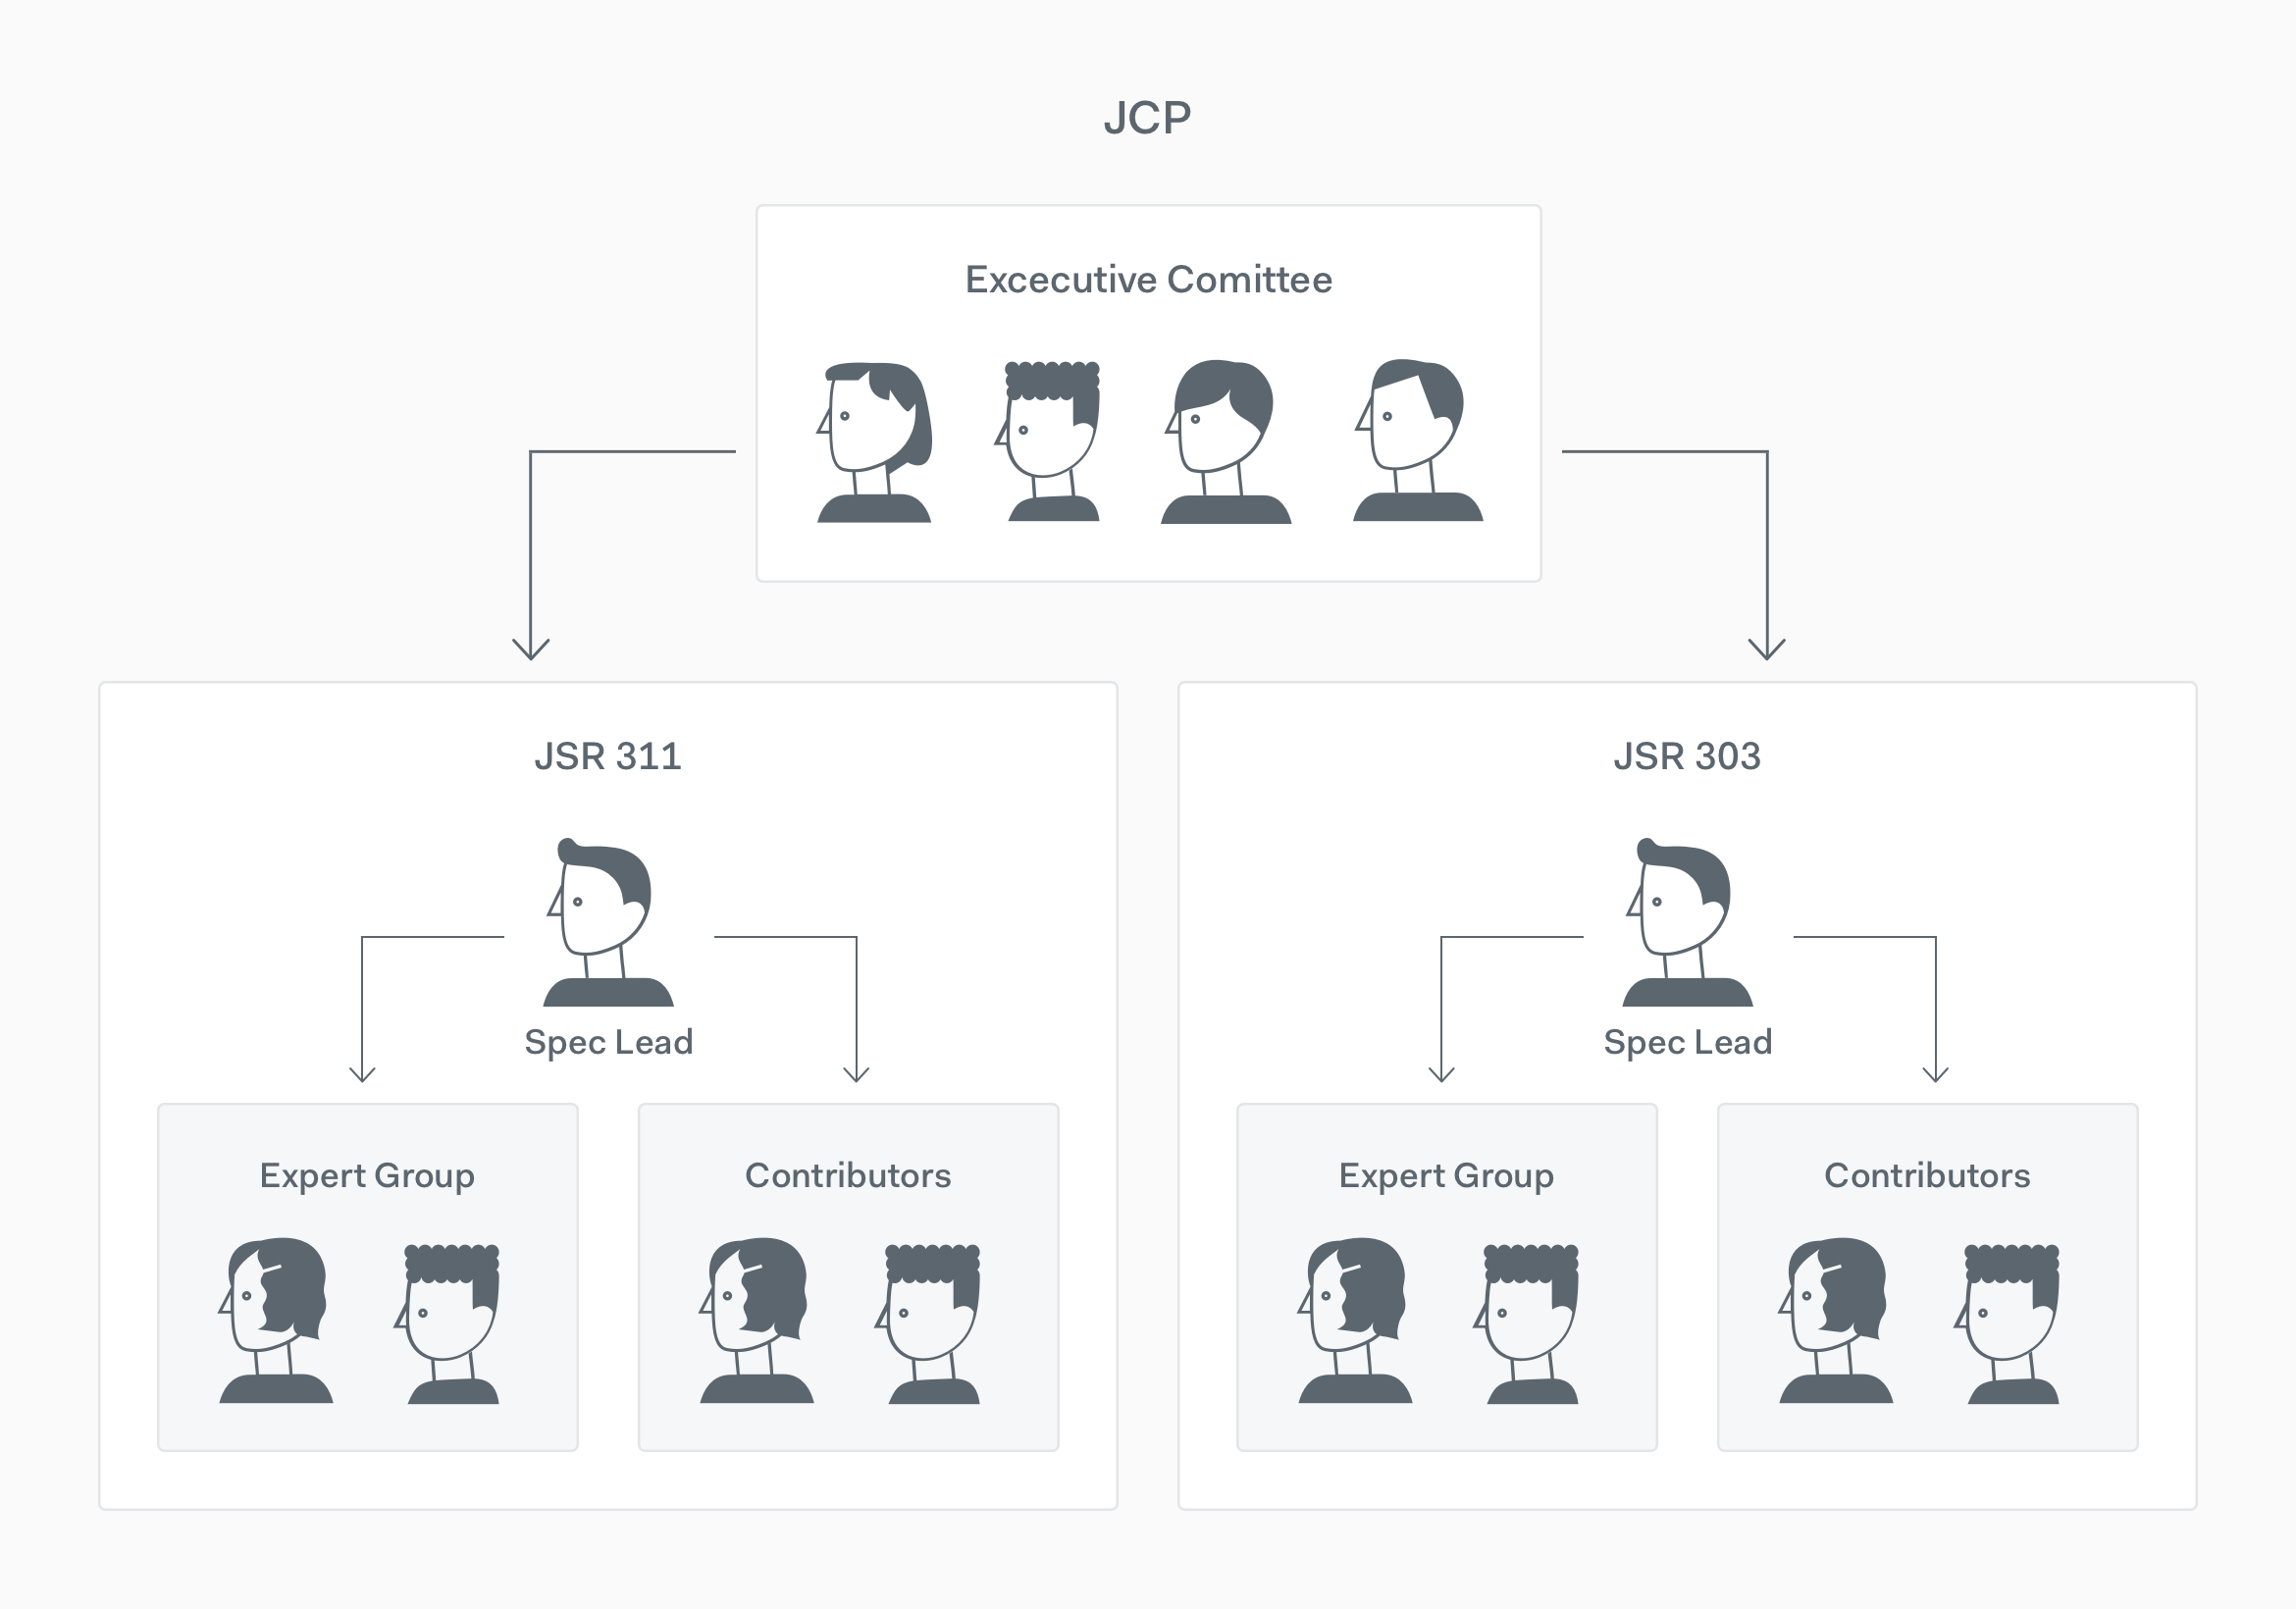 JCP members hierarchy